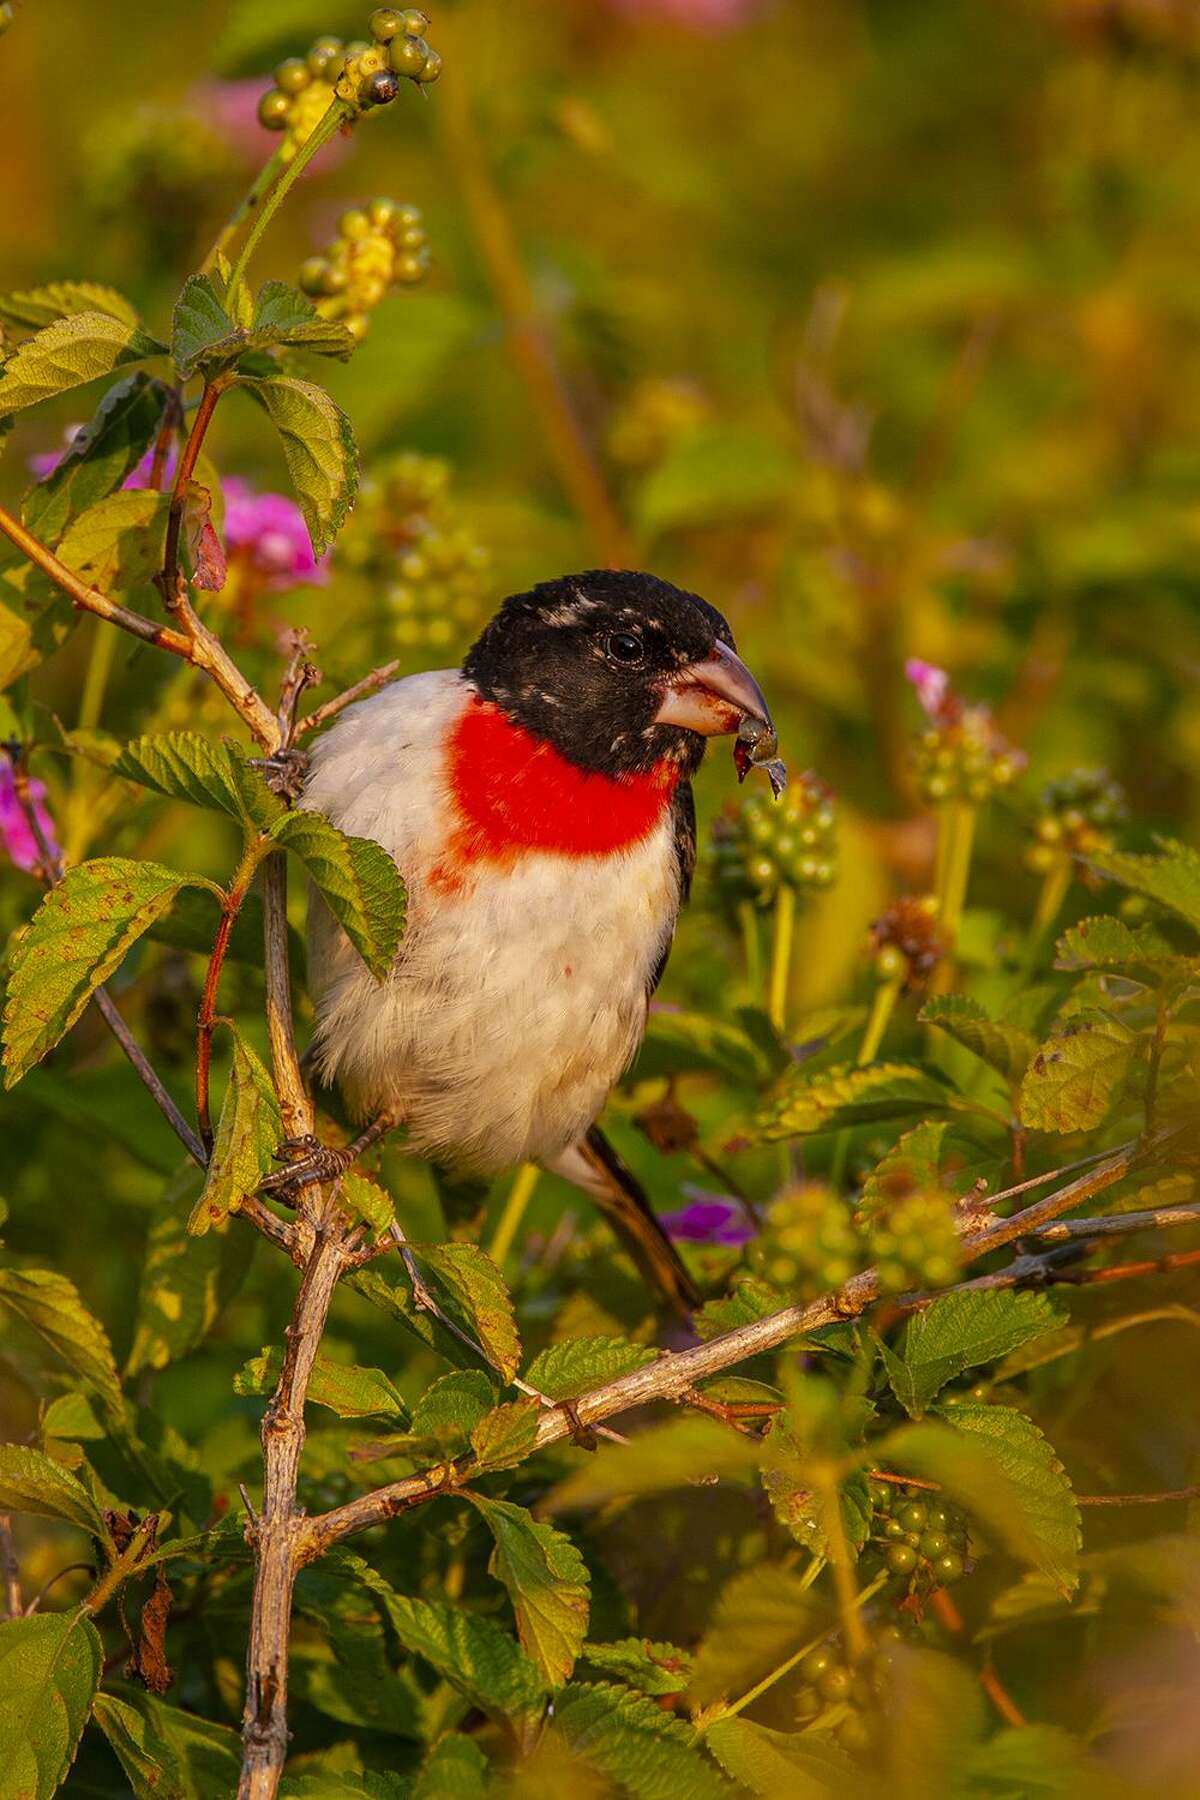 Rose-breasted grosbeak will likely show up in your yard this April. Look for them in backyards, gardens, parks, woodlands, and bird sanctuaries. Photo Credit: Kathy Adams Clark. Restricted use.